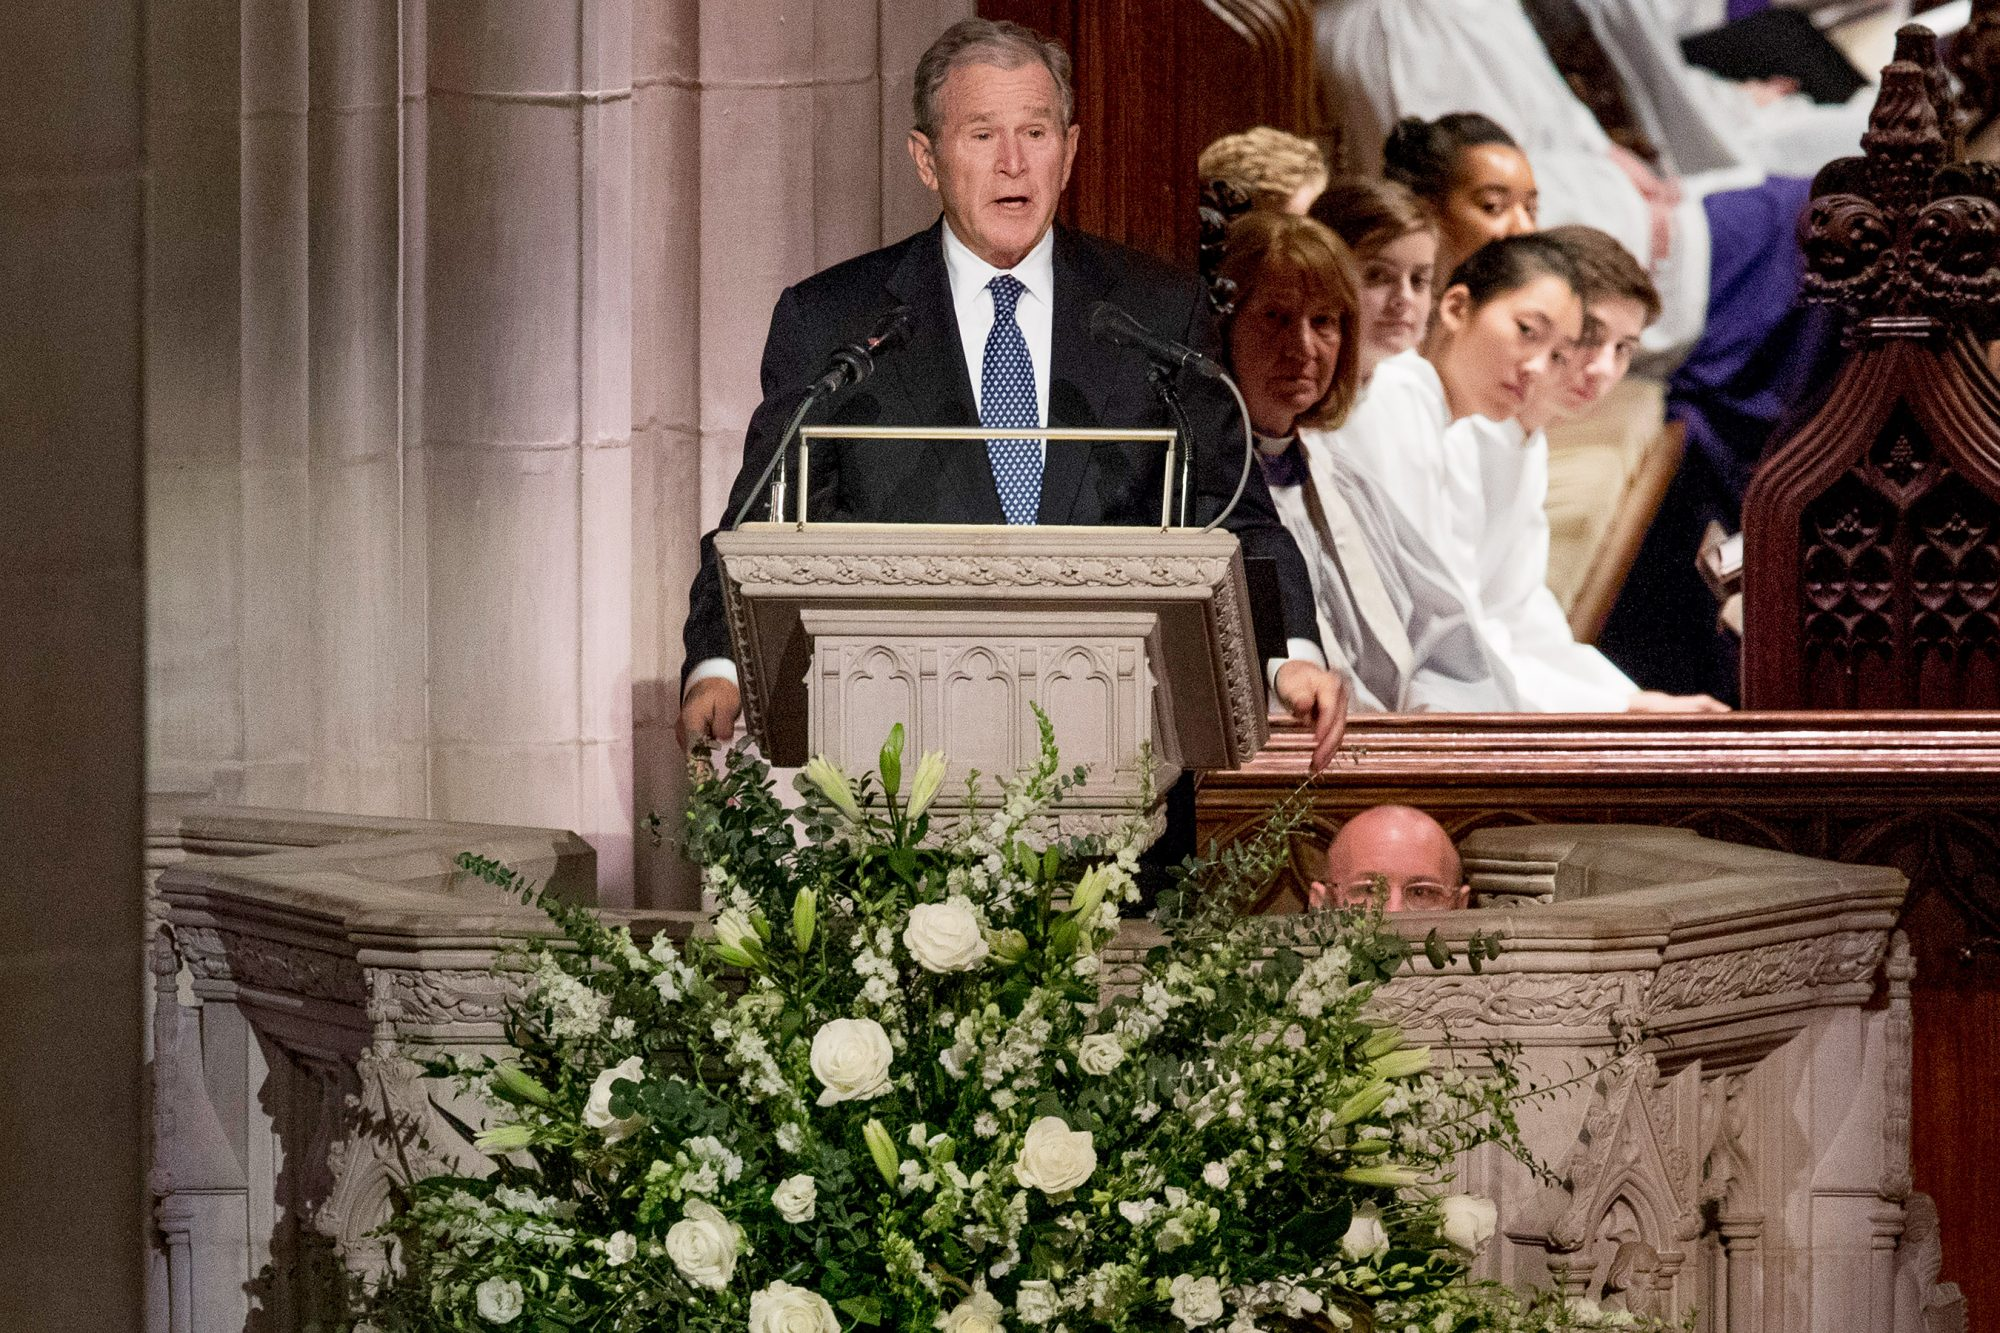 George W. Bush Cries During Emotional Eulogy of Father George H.W.: 'He Was Close to Perfect' a-bush-4